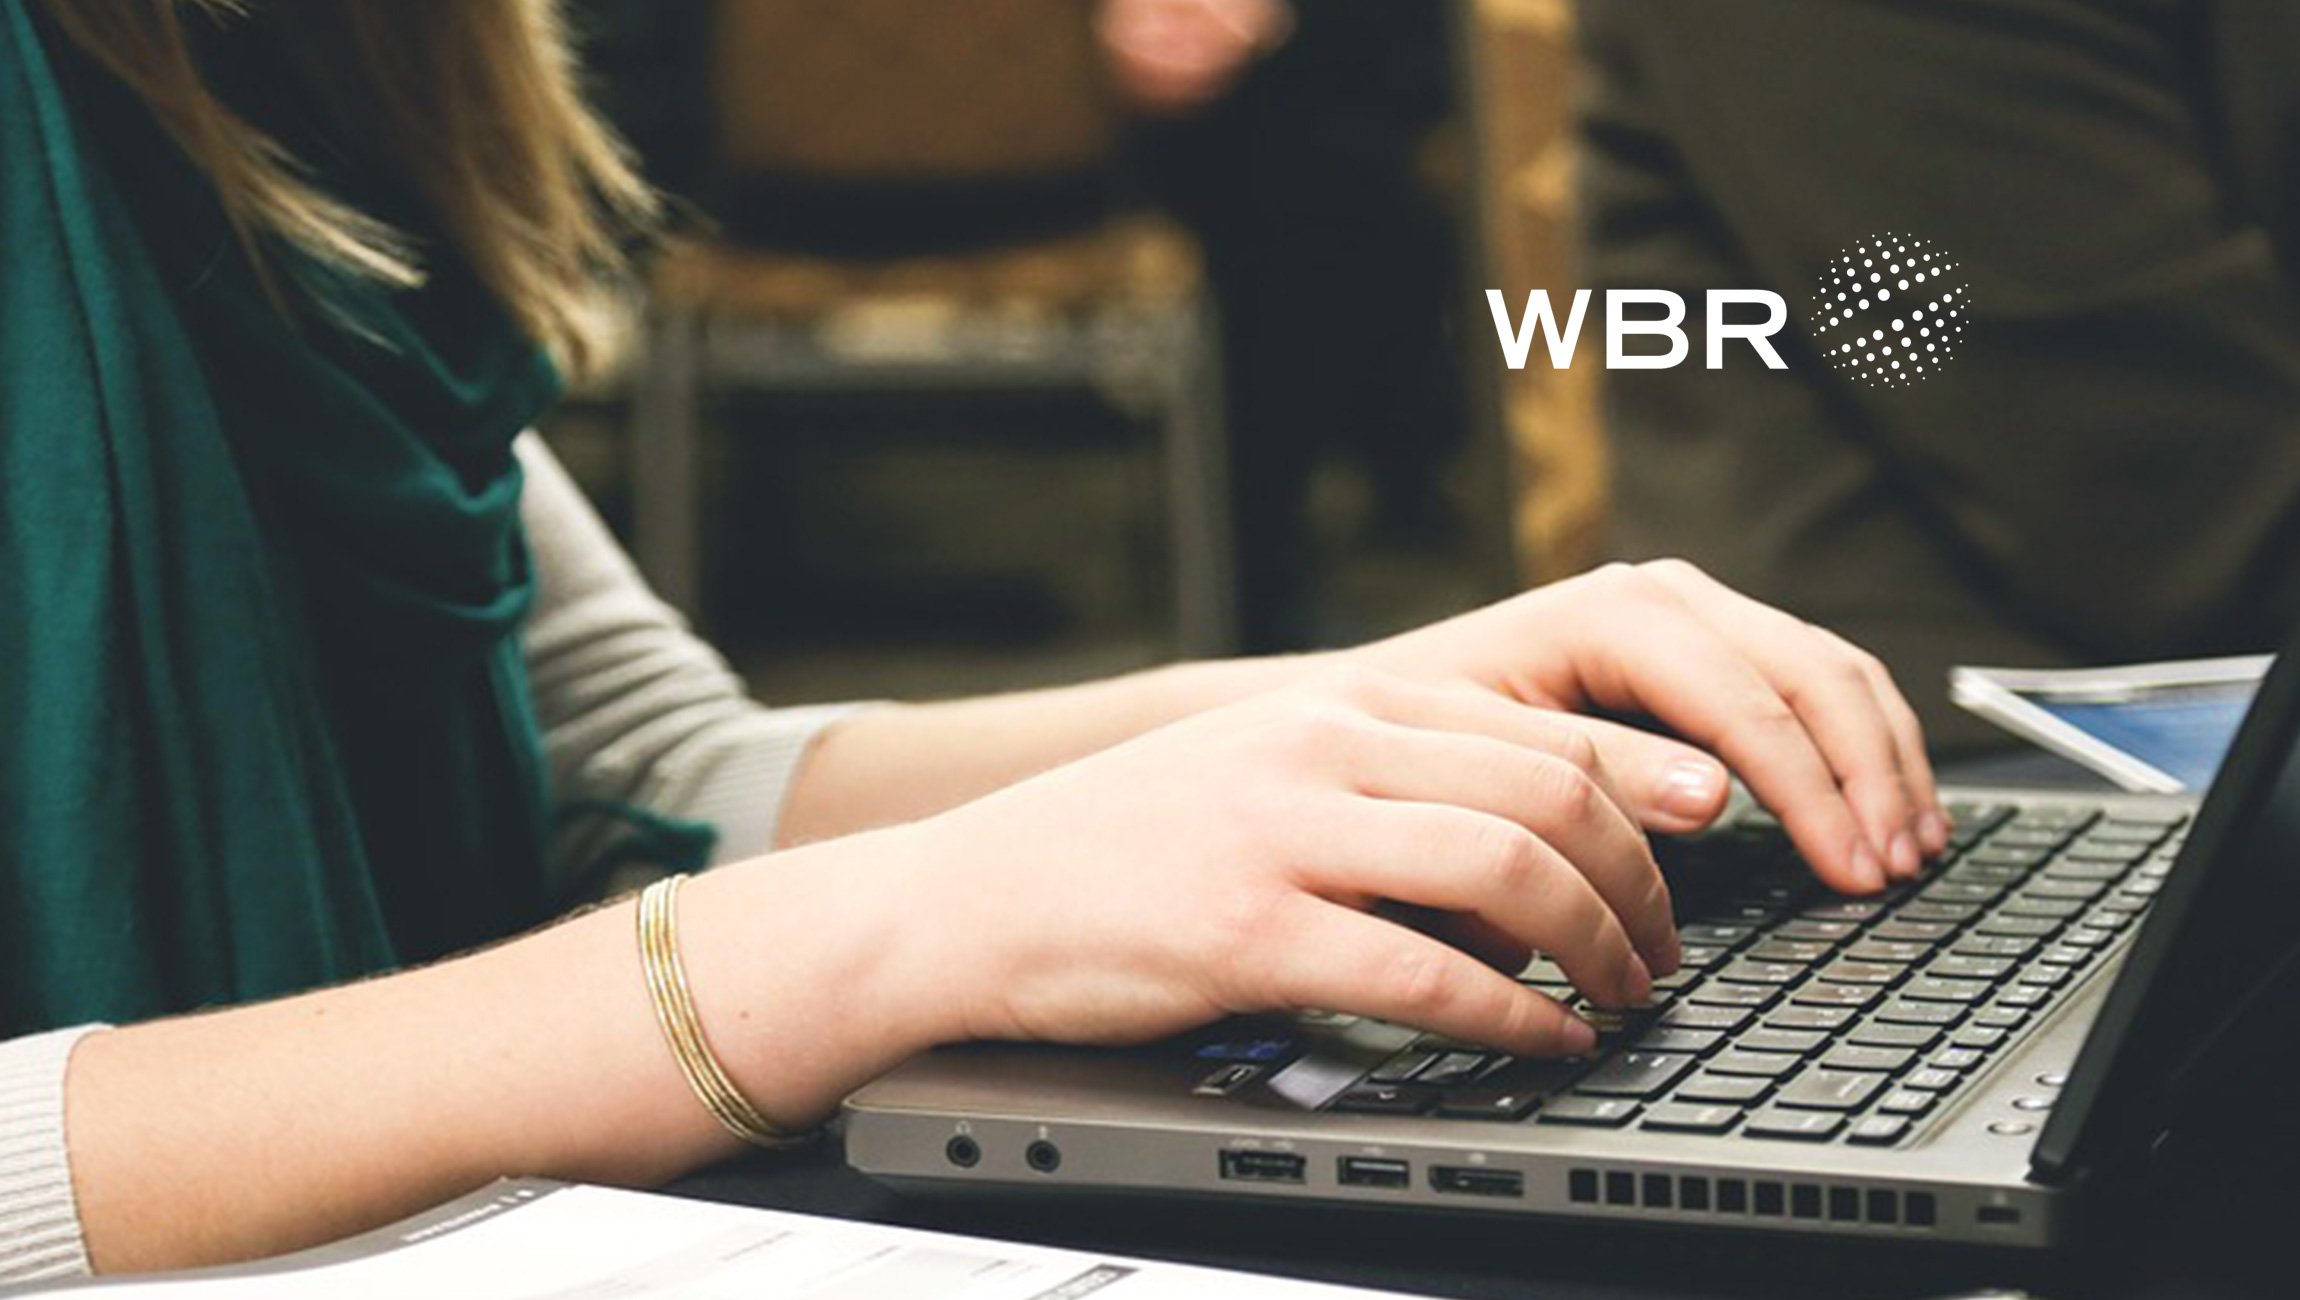 New WBR Insights Report Finds Retailers Not Ready for Advanced Mobile Experiences